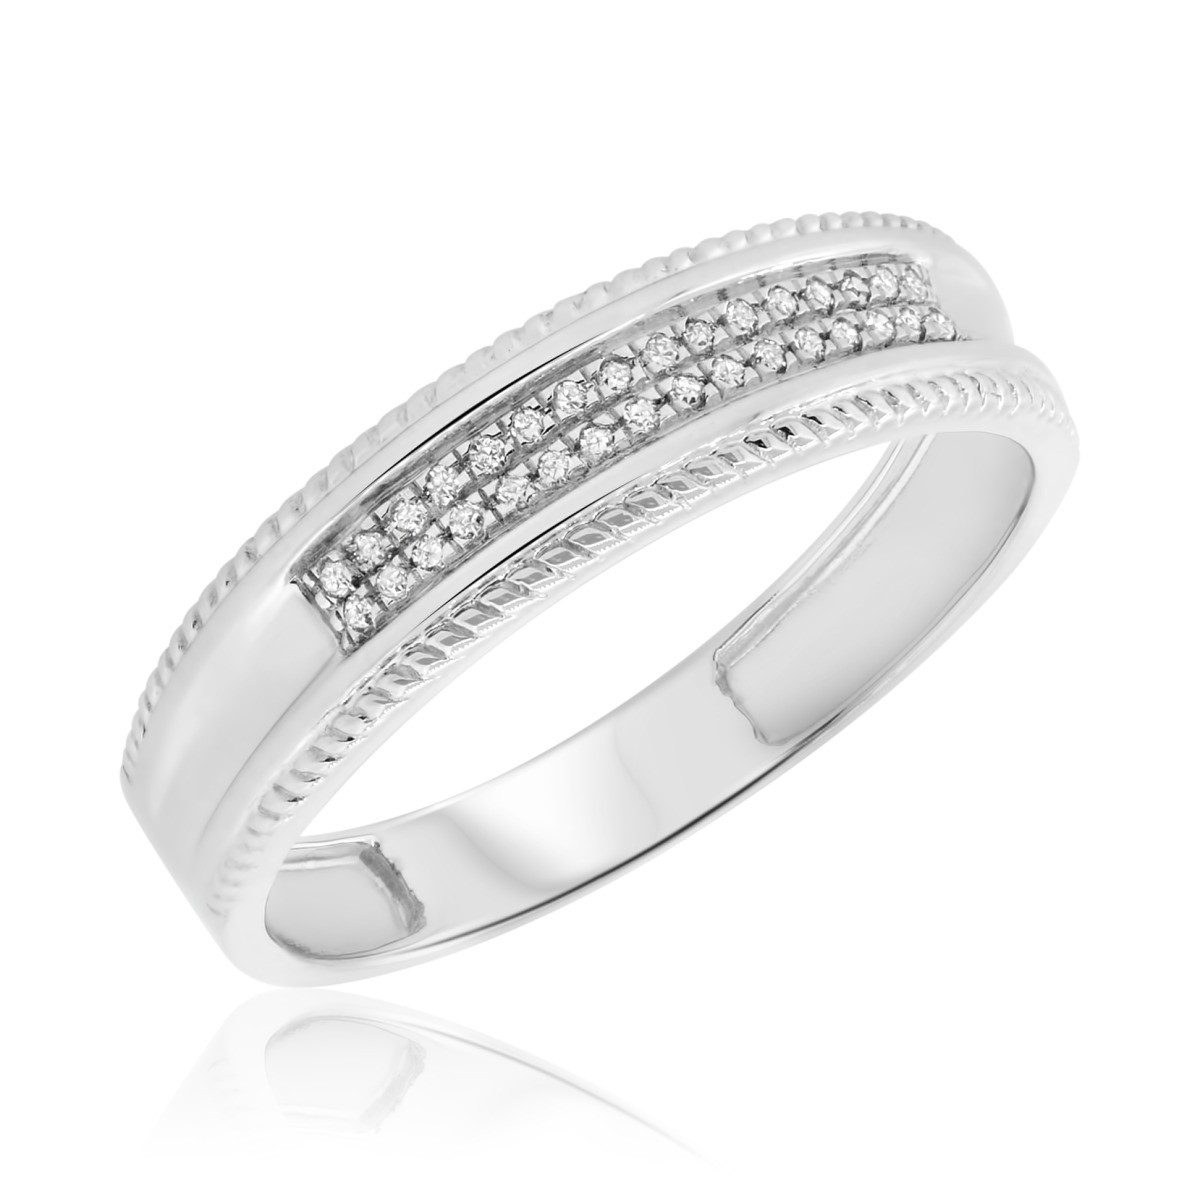 1/10 CT. T.W. Diamond Mens Wedding Band  10K White Gold